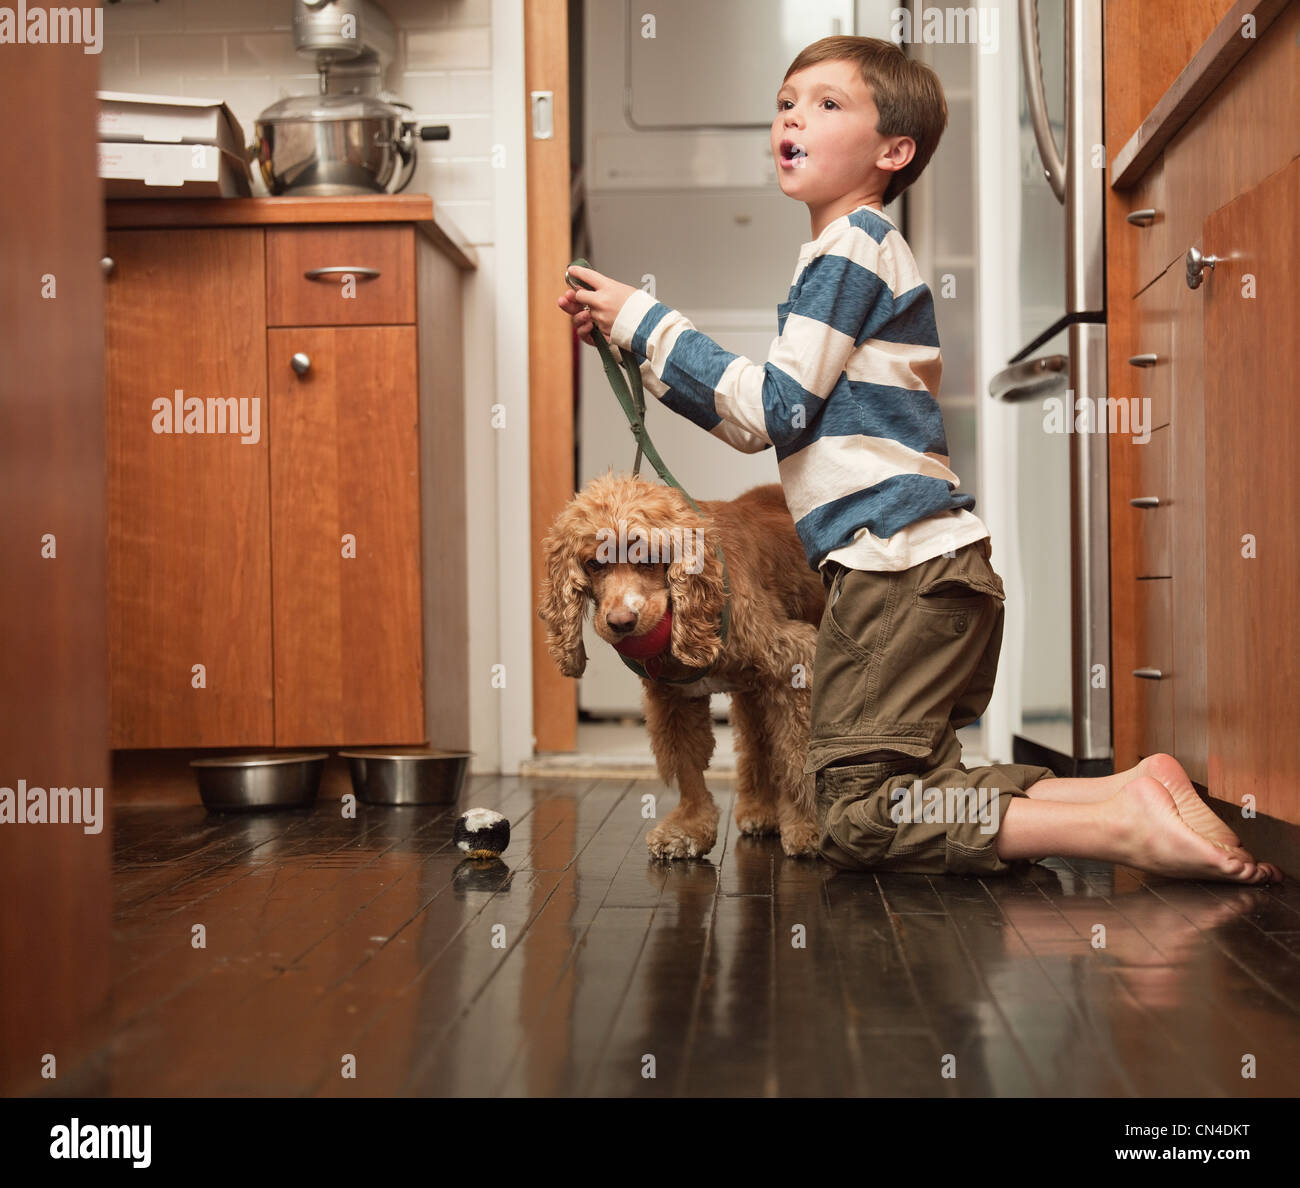 Boy holding lead of pet dog in kitchen - Stock Image